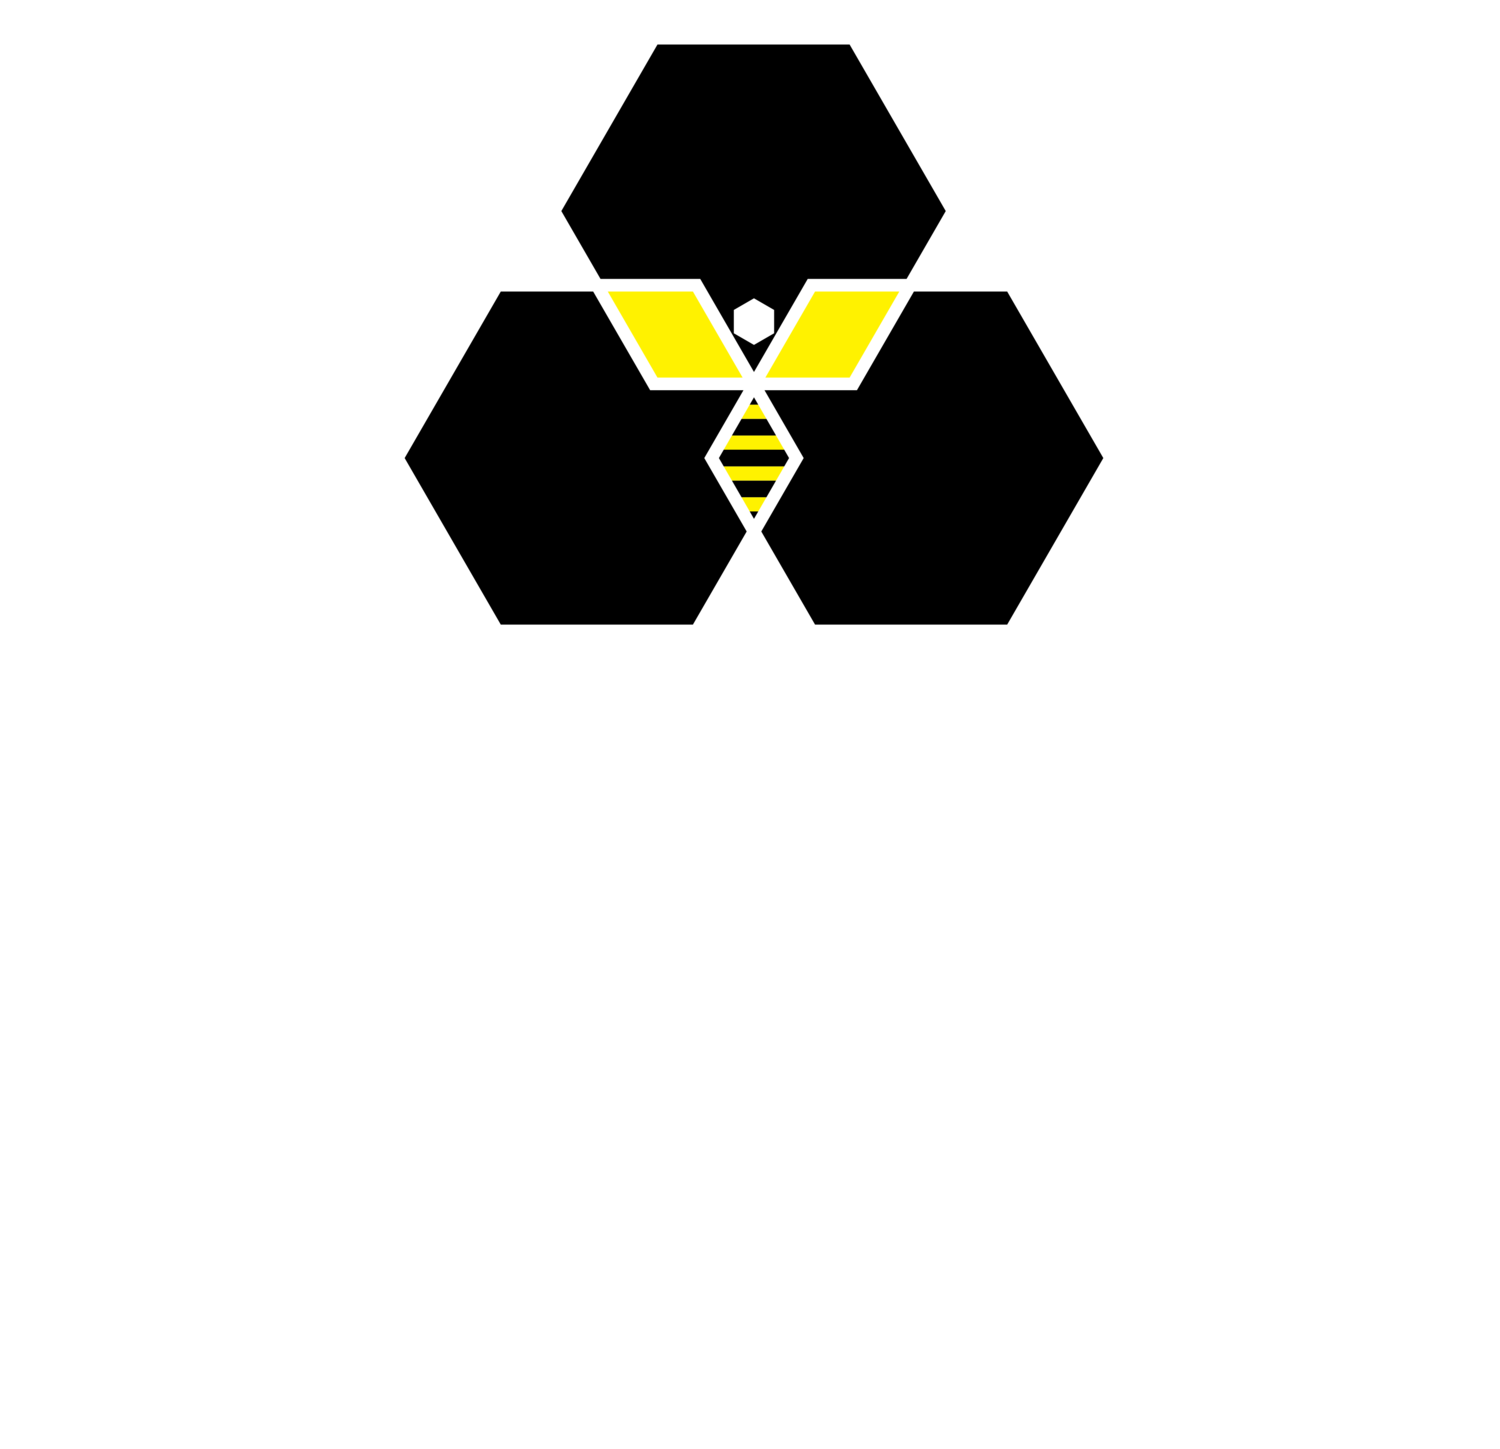 ENTER THE SECRET LIFE